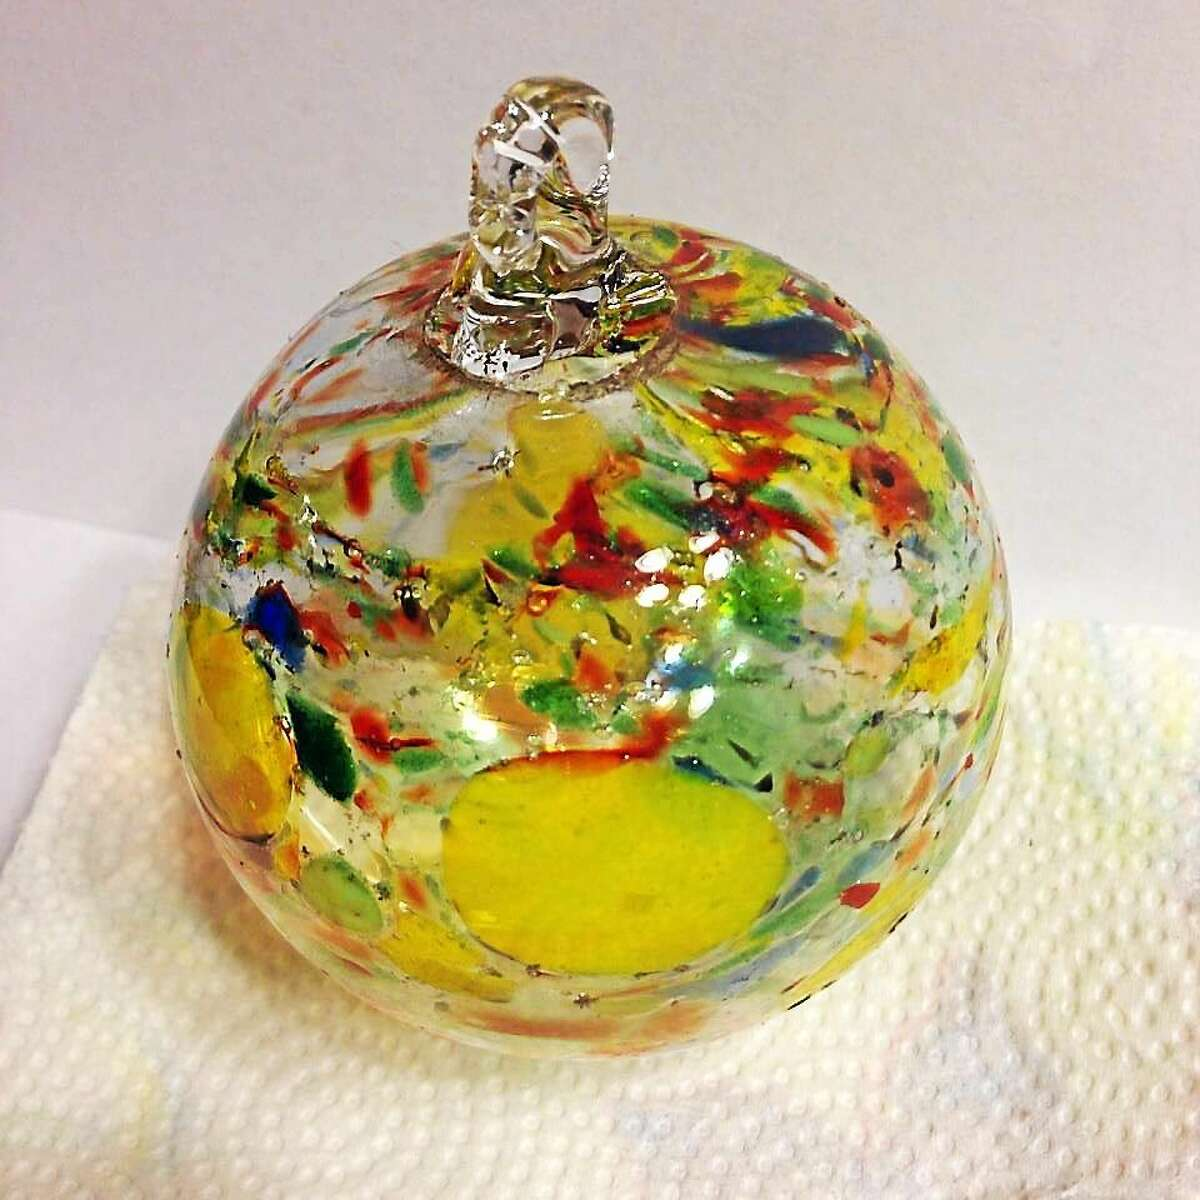 Contributed photo Markis Tomascak's glasswork. The artist is a participant in the Open Your Eyes studio tour in June.